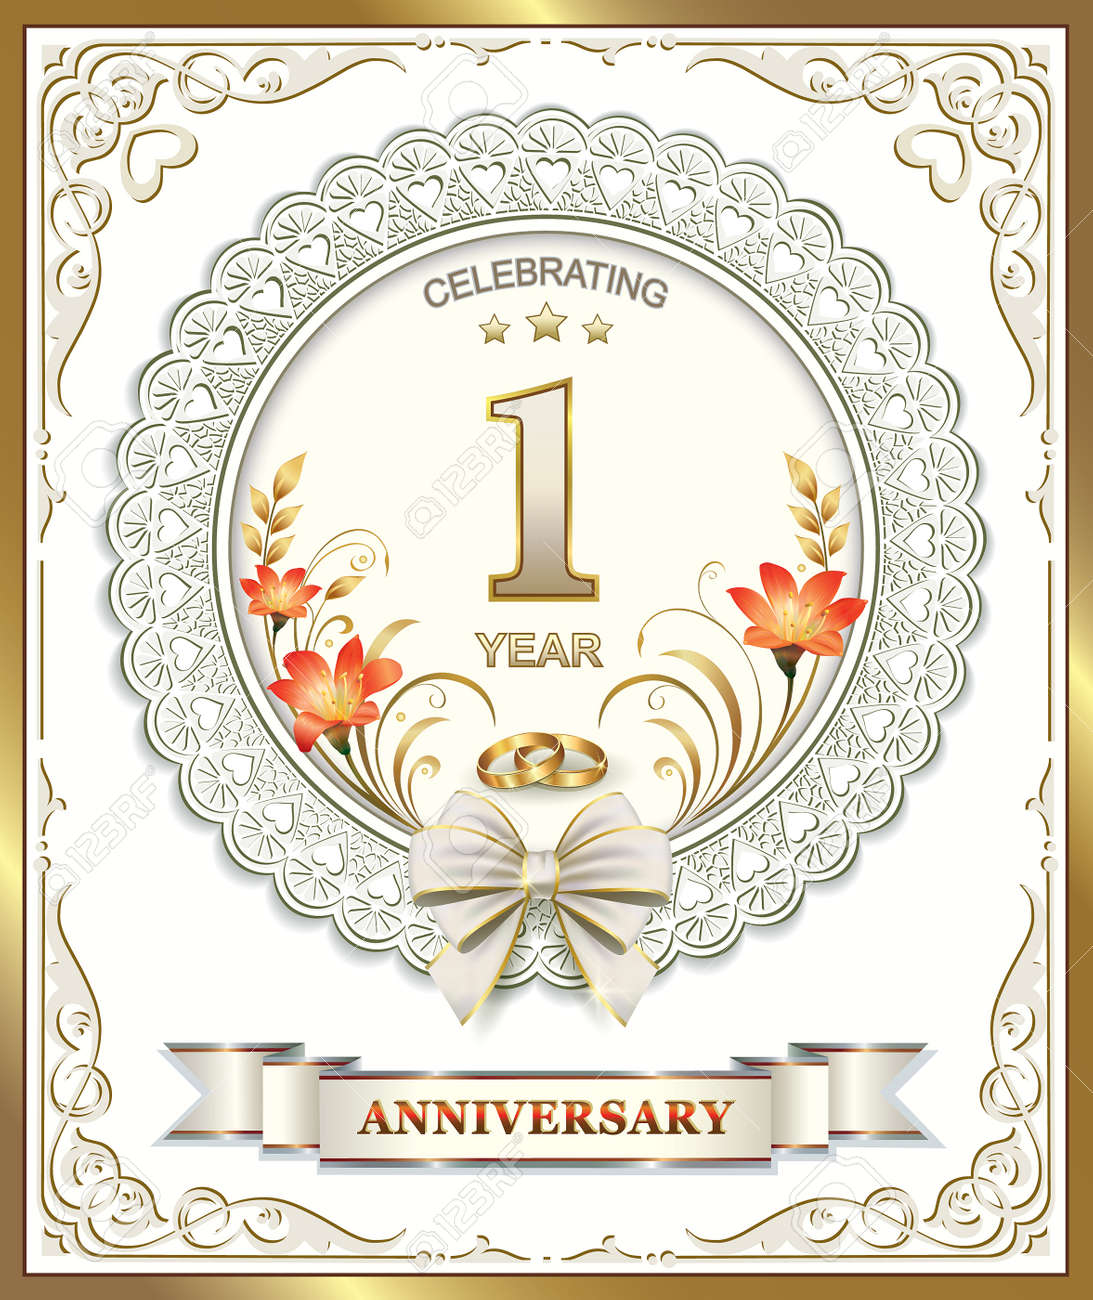 Greeting card with wedding anniversary royalty free cliparts greeting card with wedding anniversary stock vector 39585859 m4hsunfo